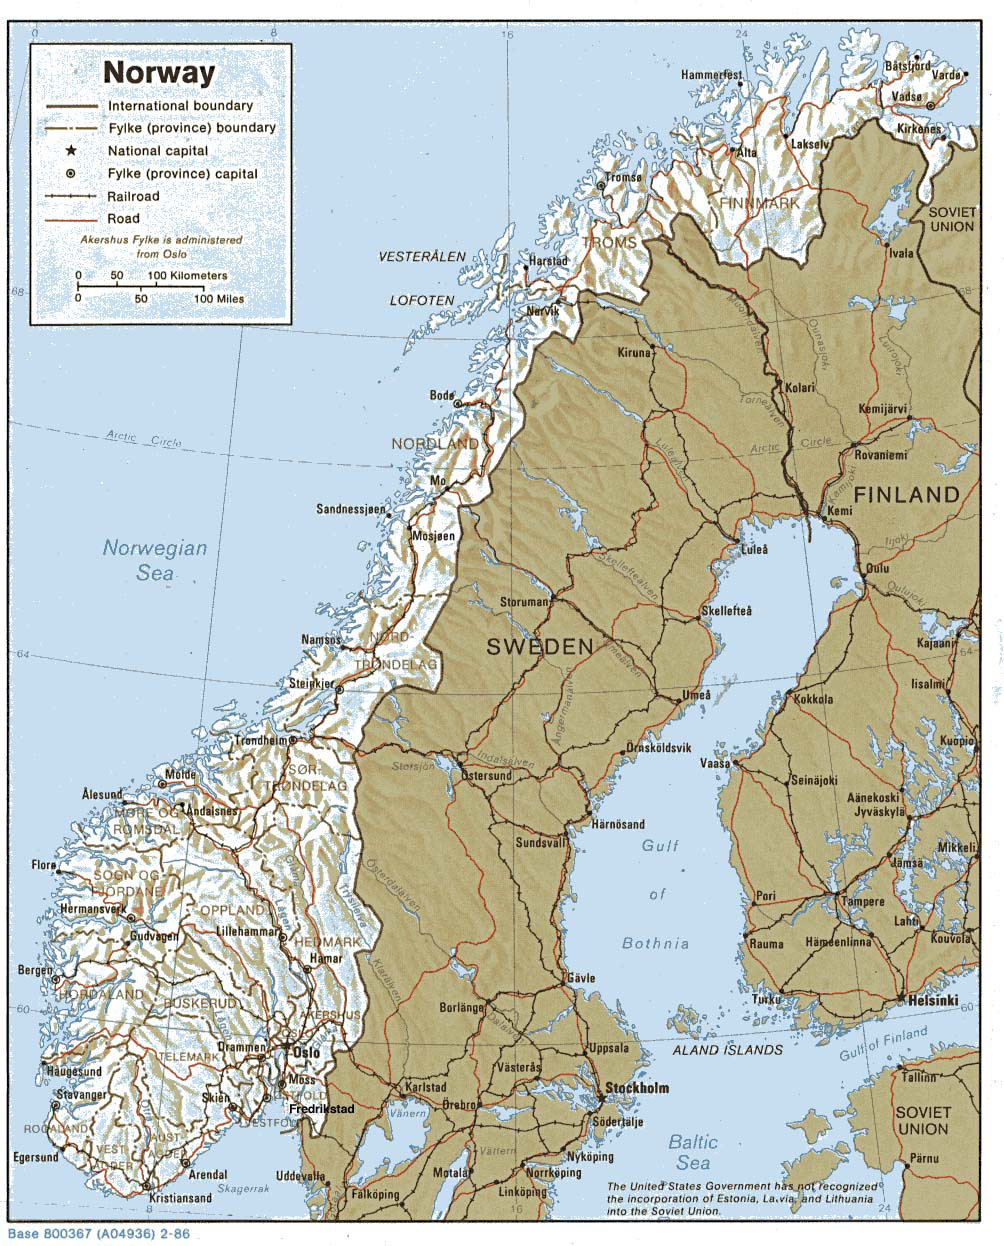 Large Detailed Relief And Political Map Of Norway With Highways - Norway map detailed